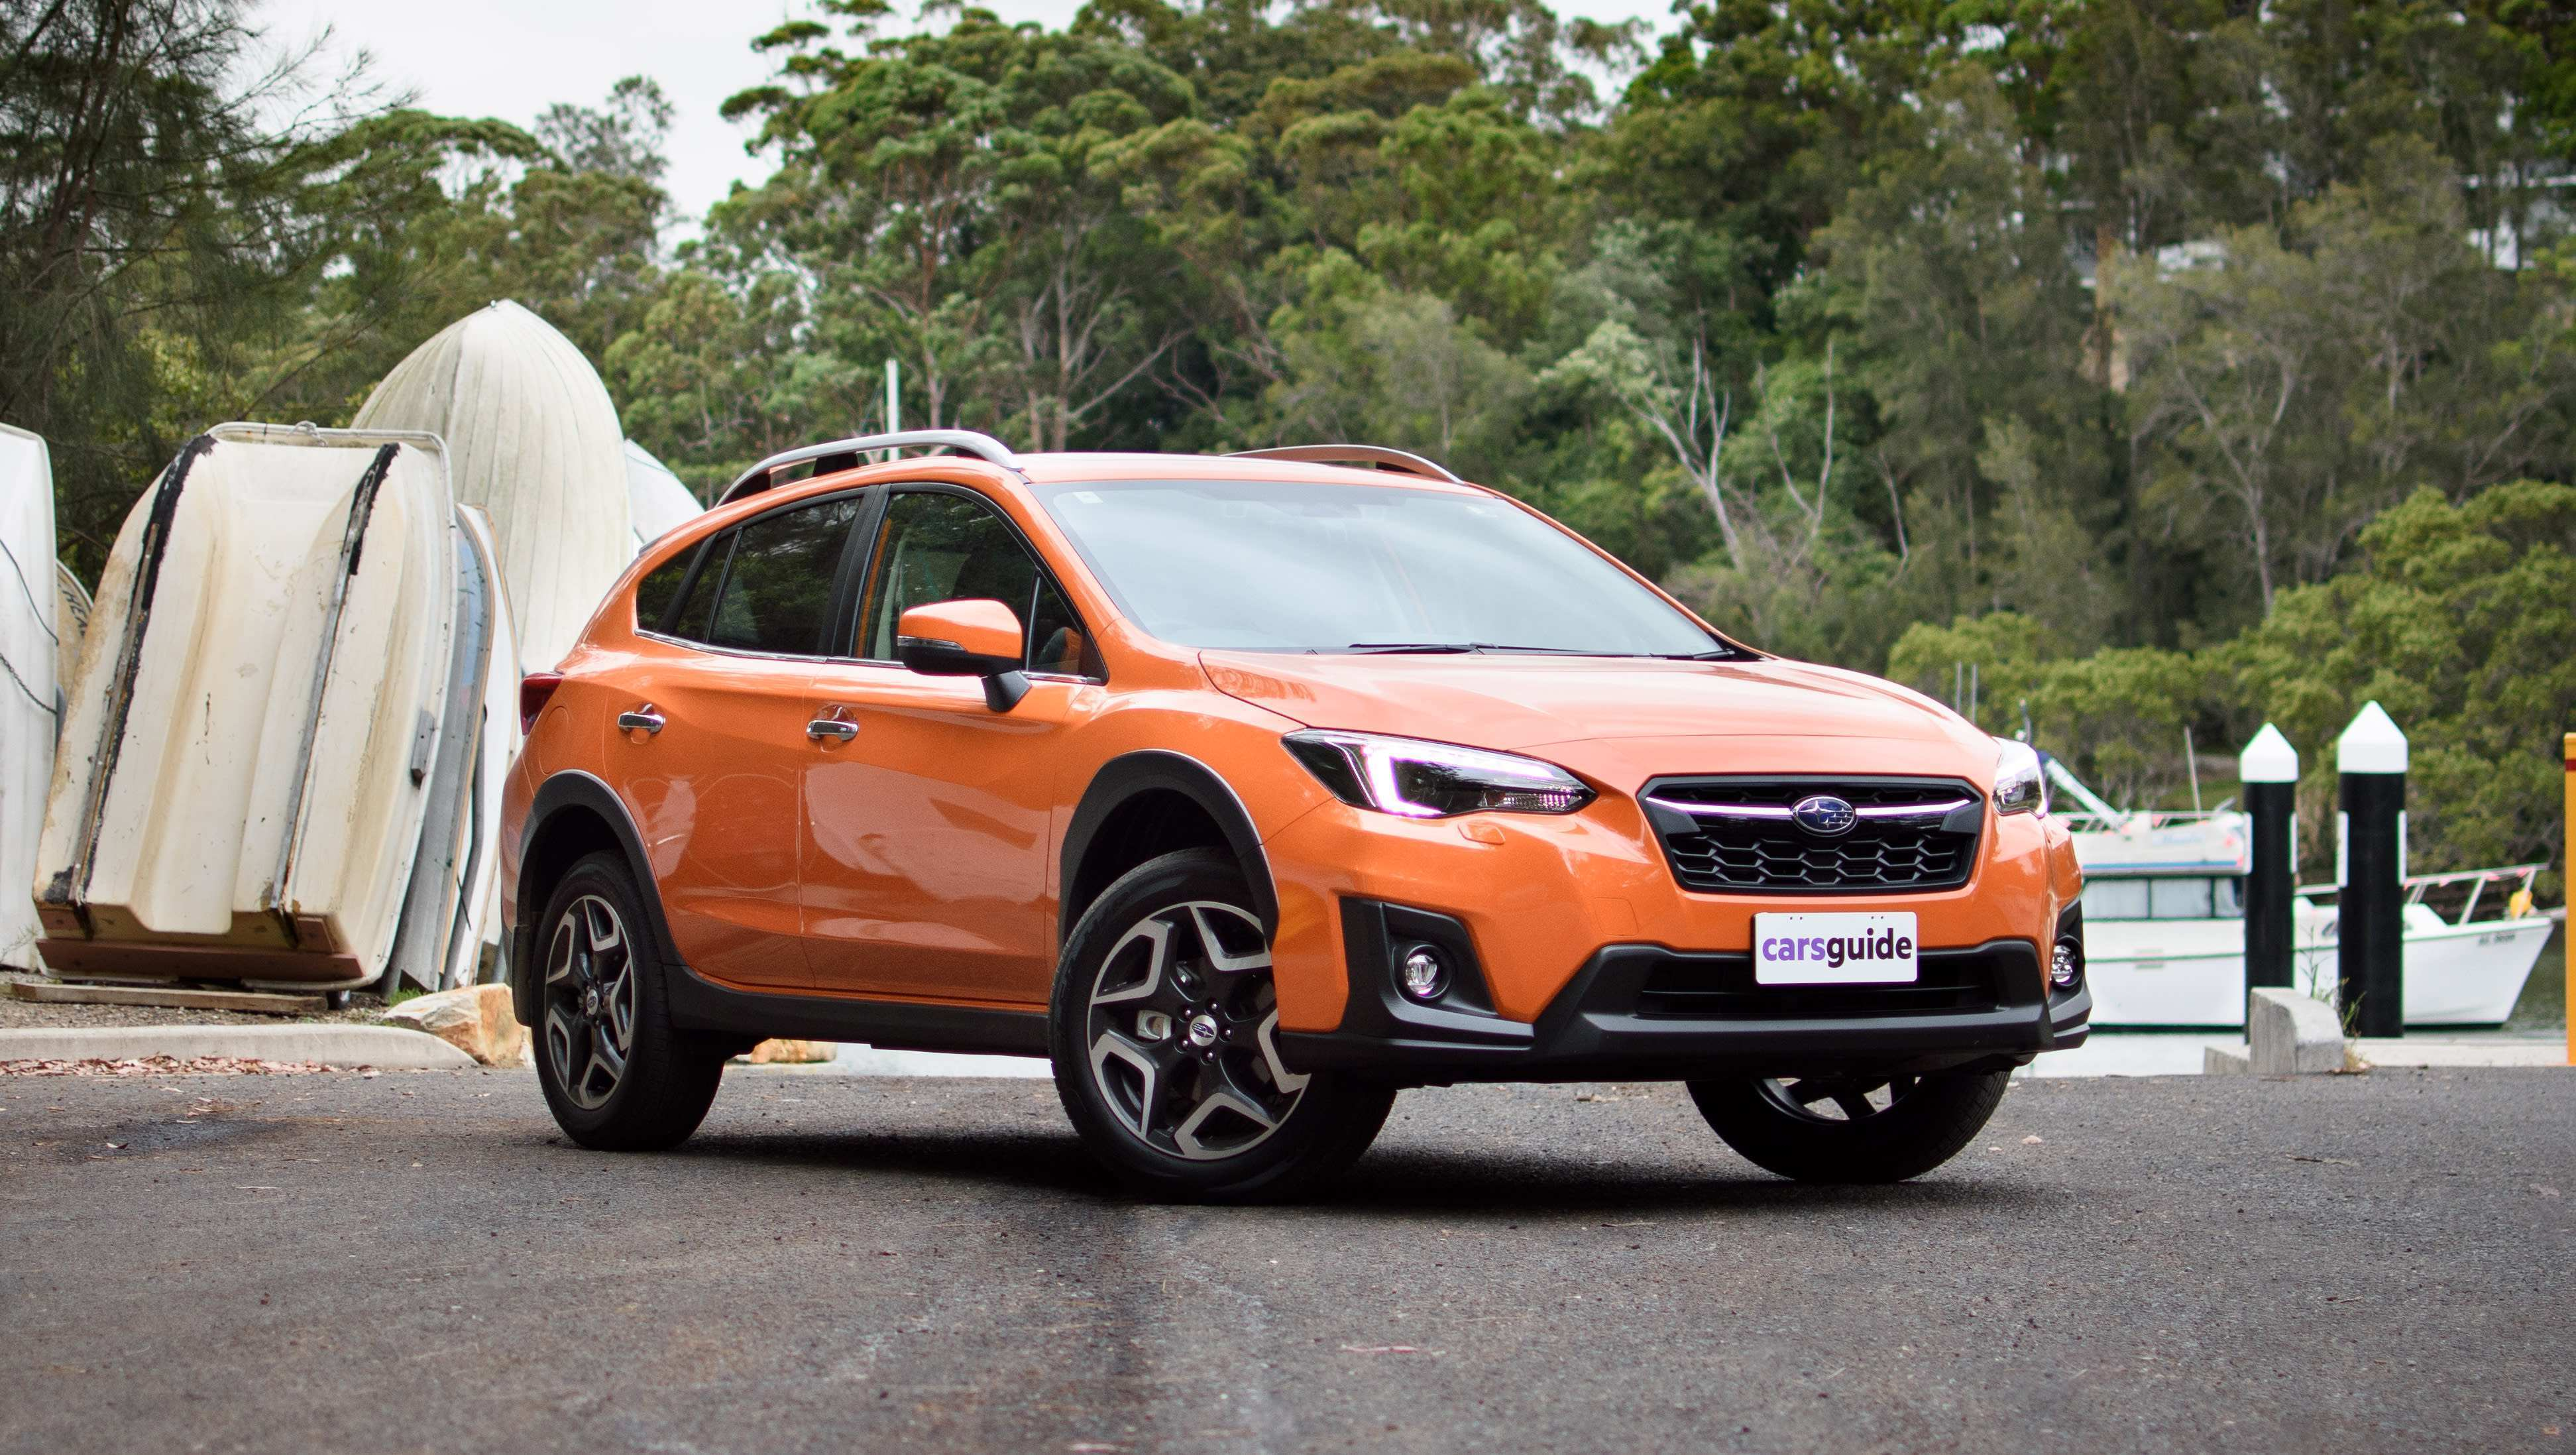 62 All New Subaru Xv 2019 Review